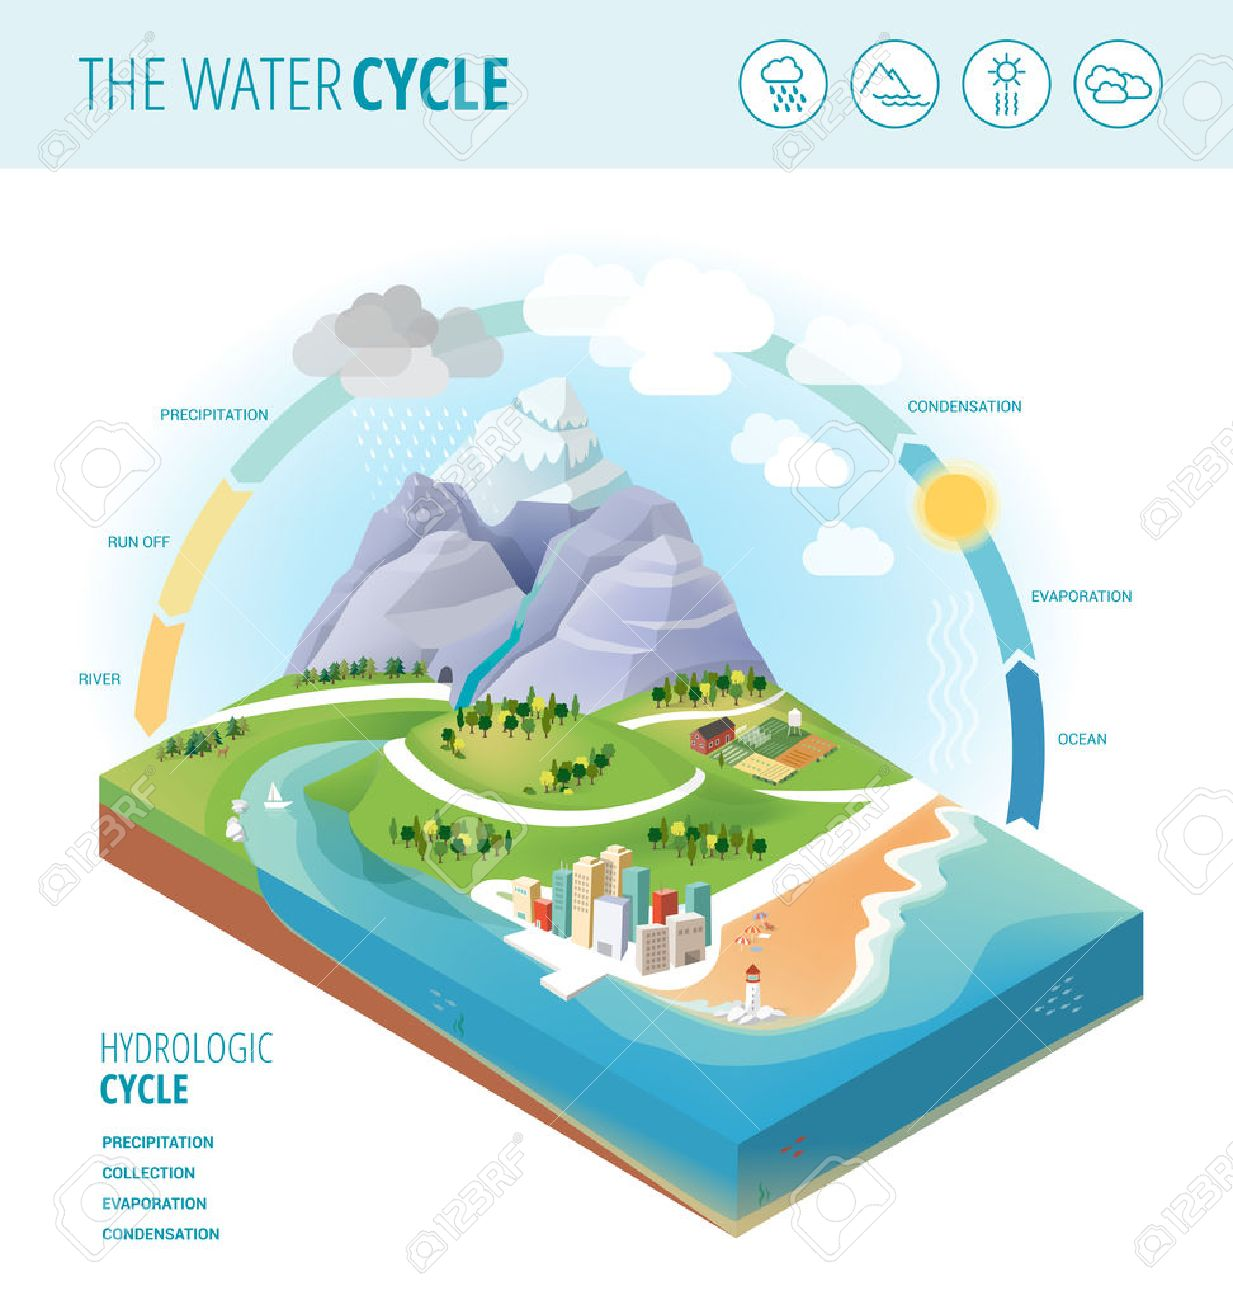 The Water Cycle Diagram Showing Precipitation Collection Evaporation And Condensation Of On A